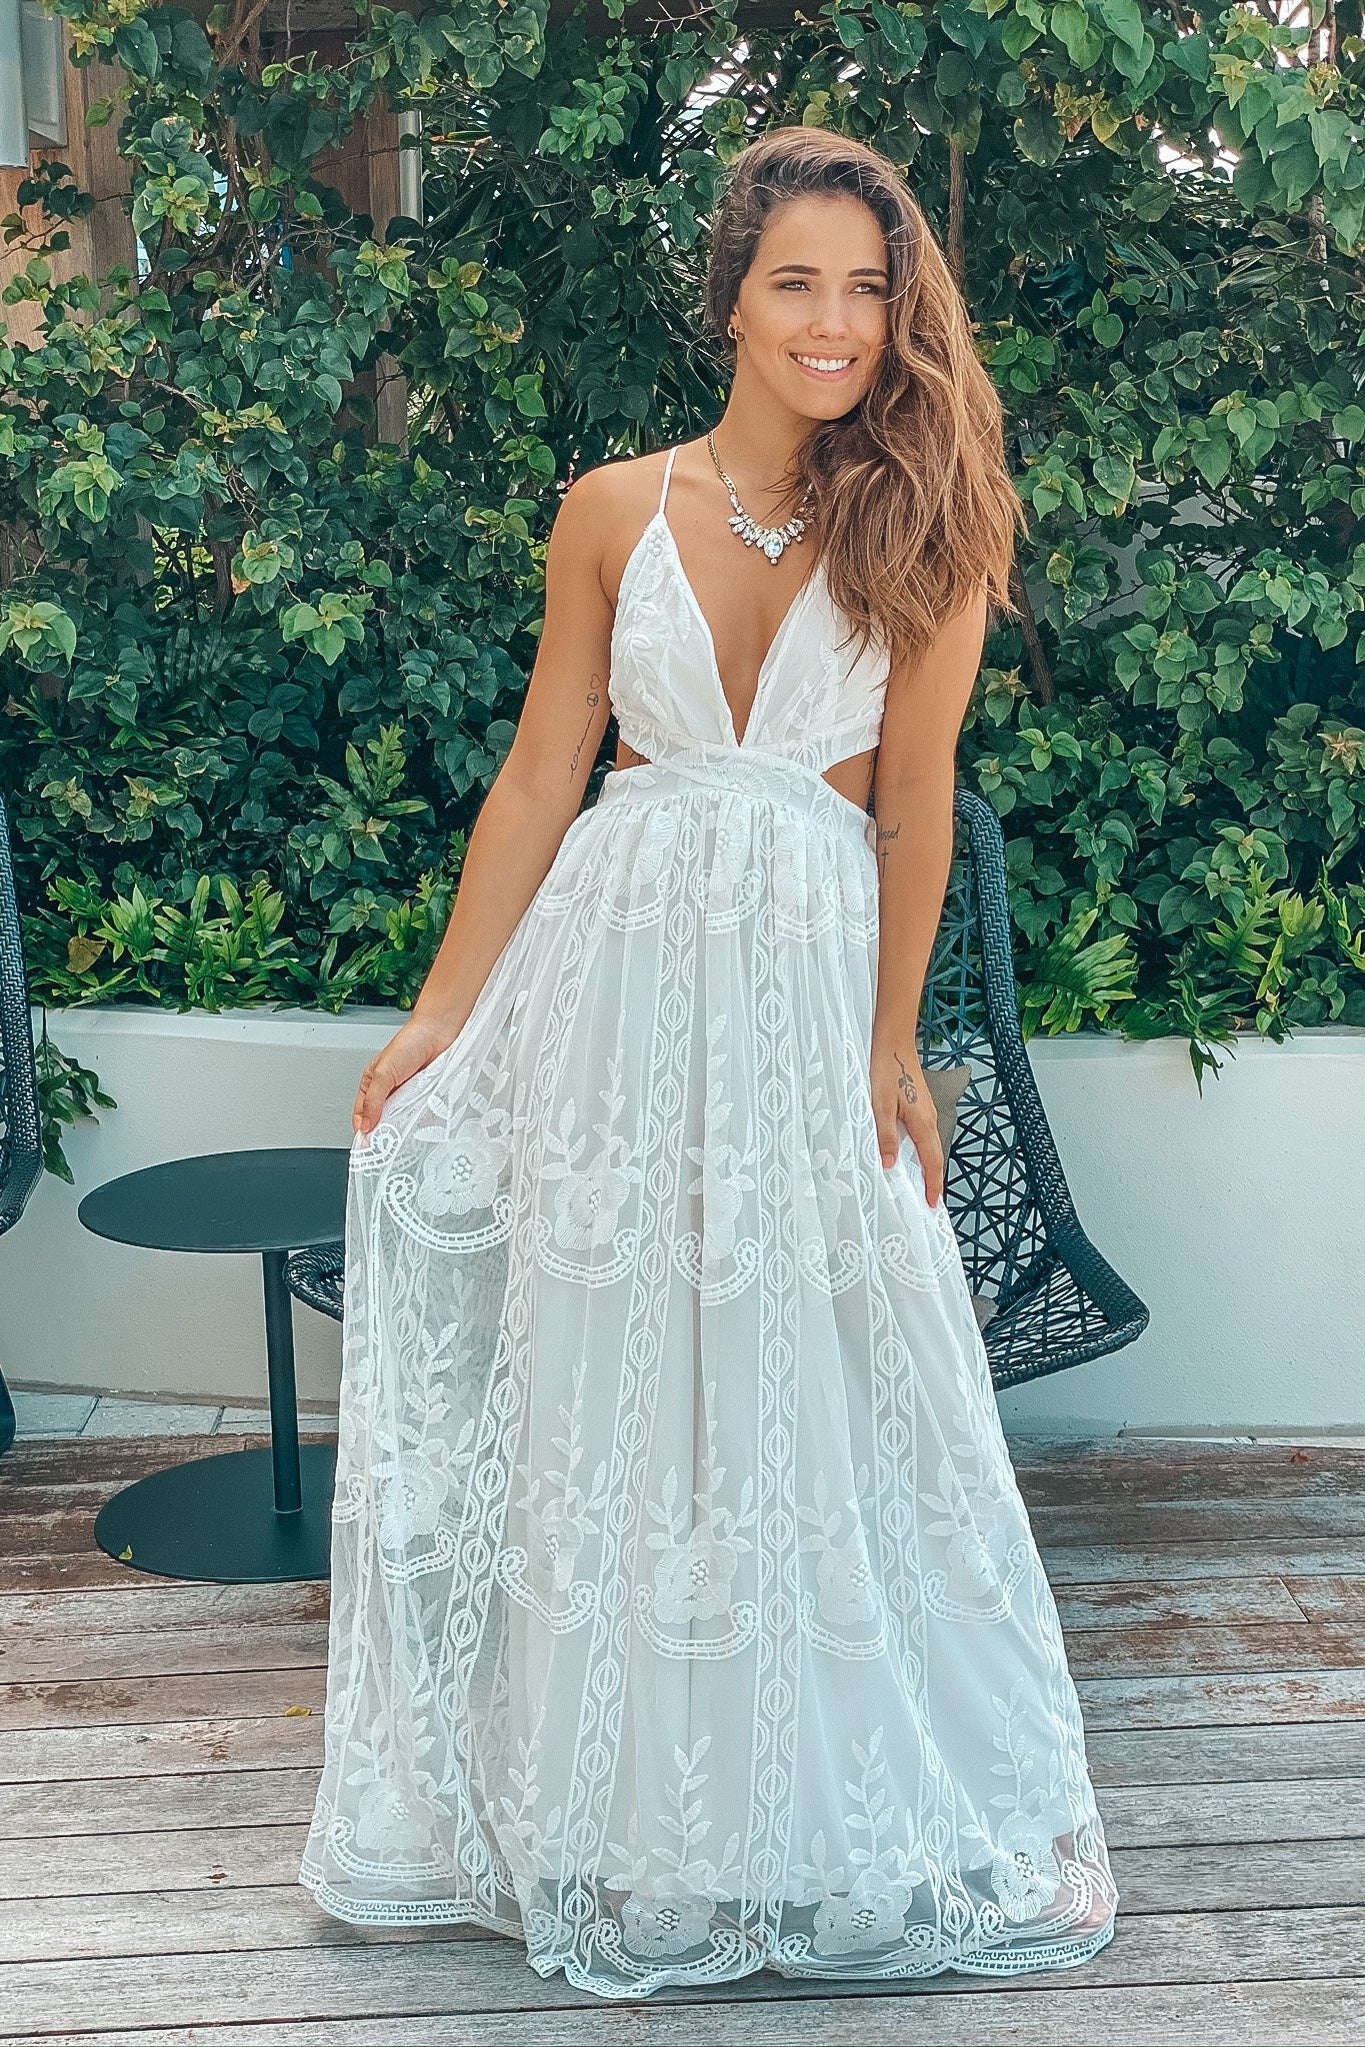 Lifestyle ivory lace maxi dress with cutouts